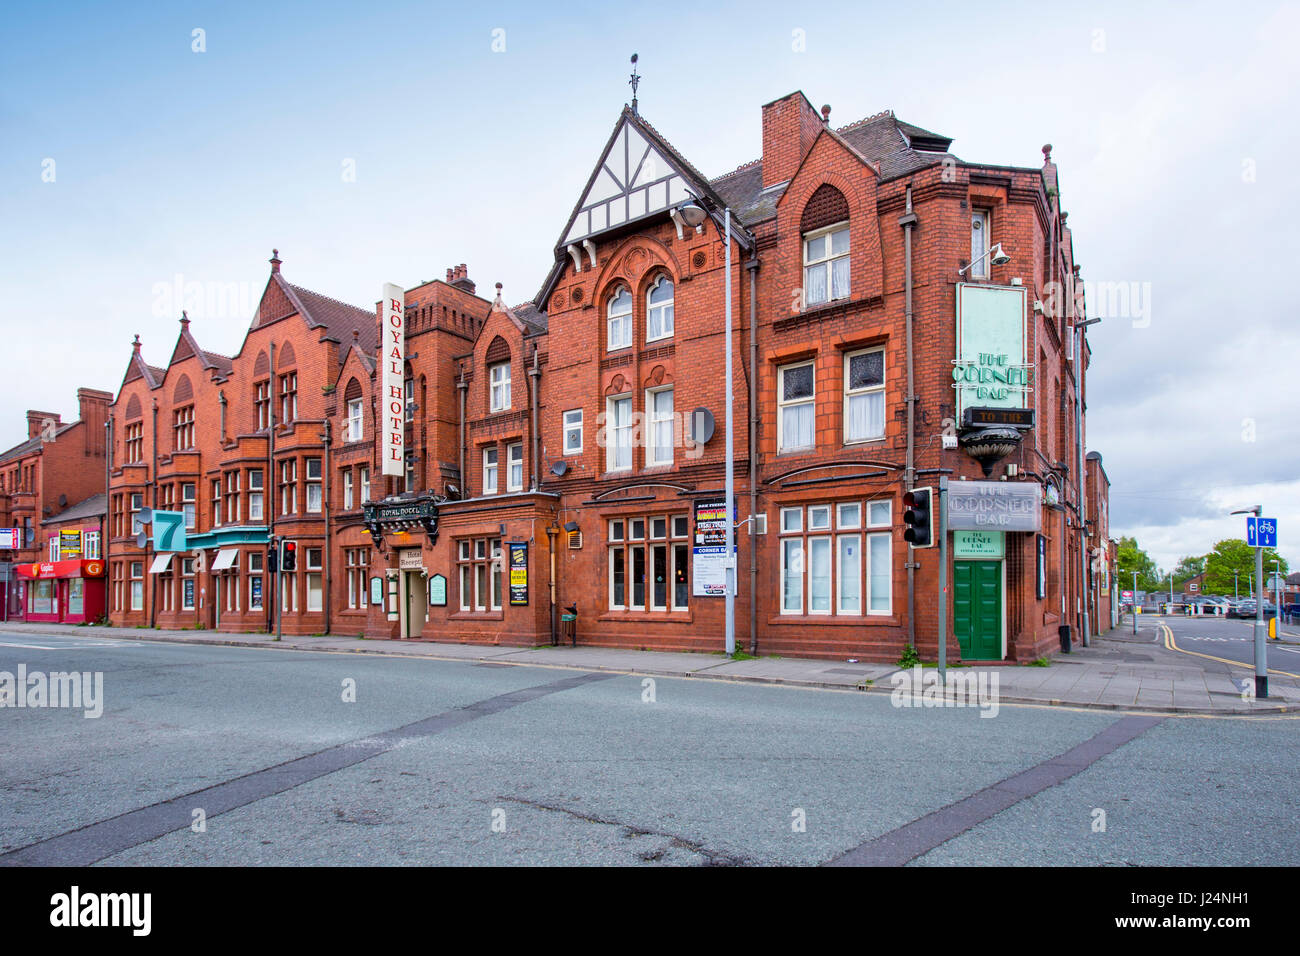 The Royal Hotel on Nantwich Road in Crewe Cheshire UK - Stock Image